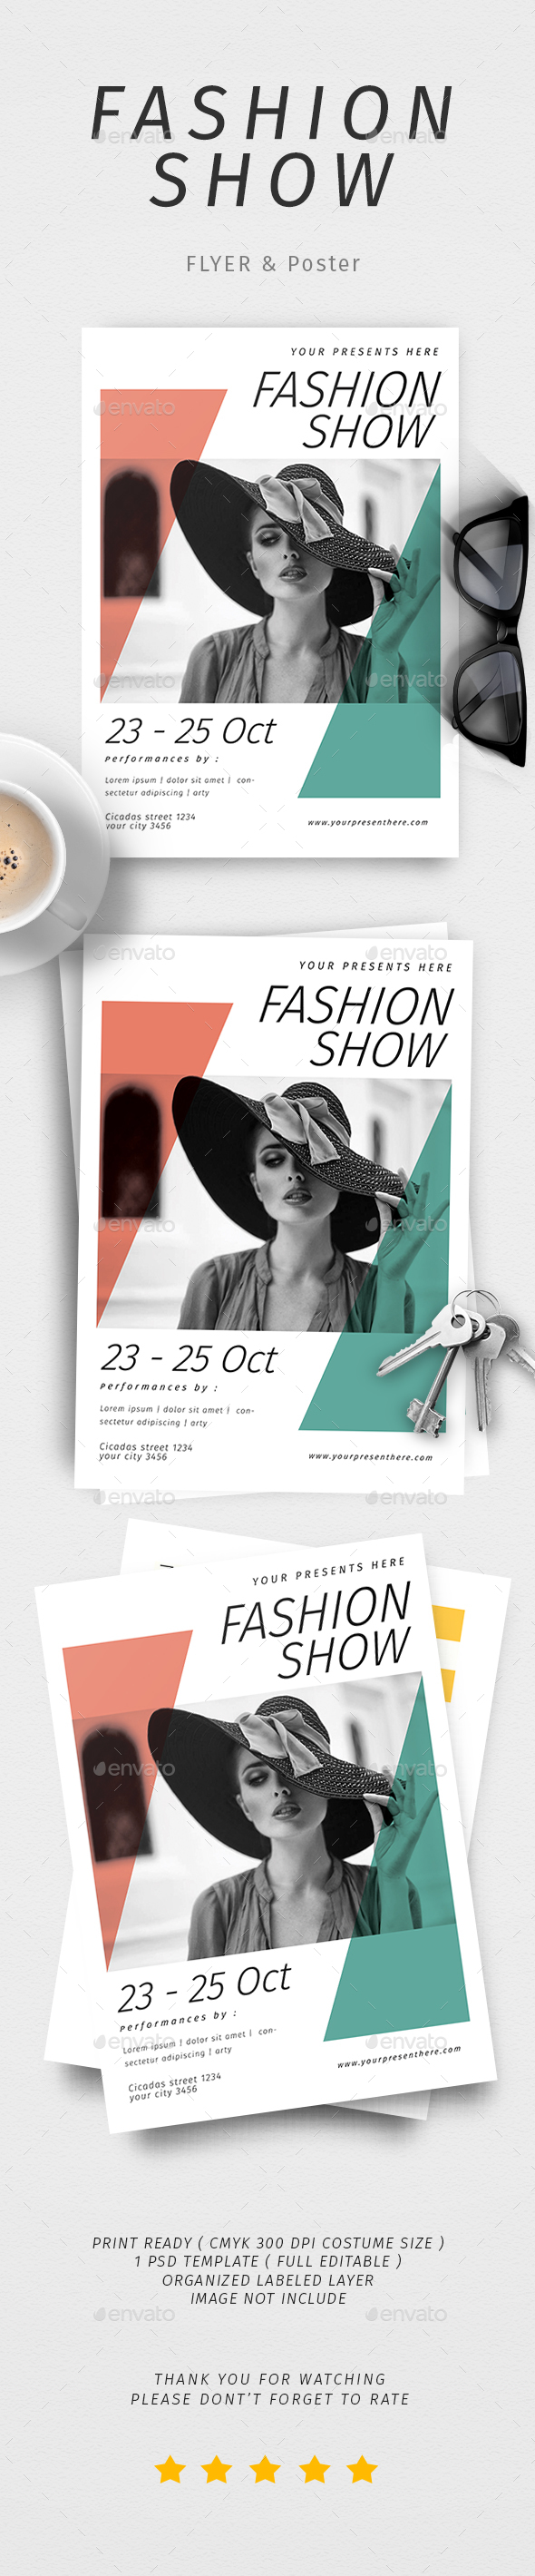 Fashion Show Poster & Flyer - Events Flyers